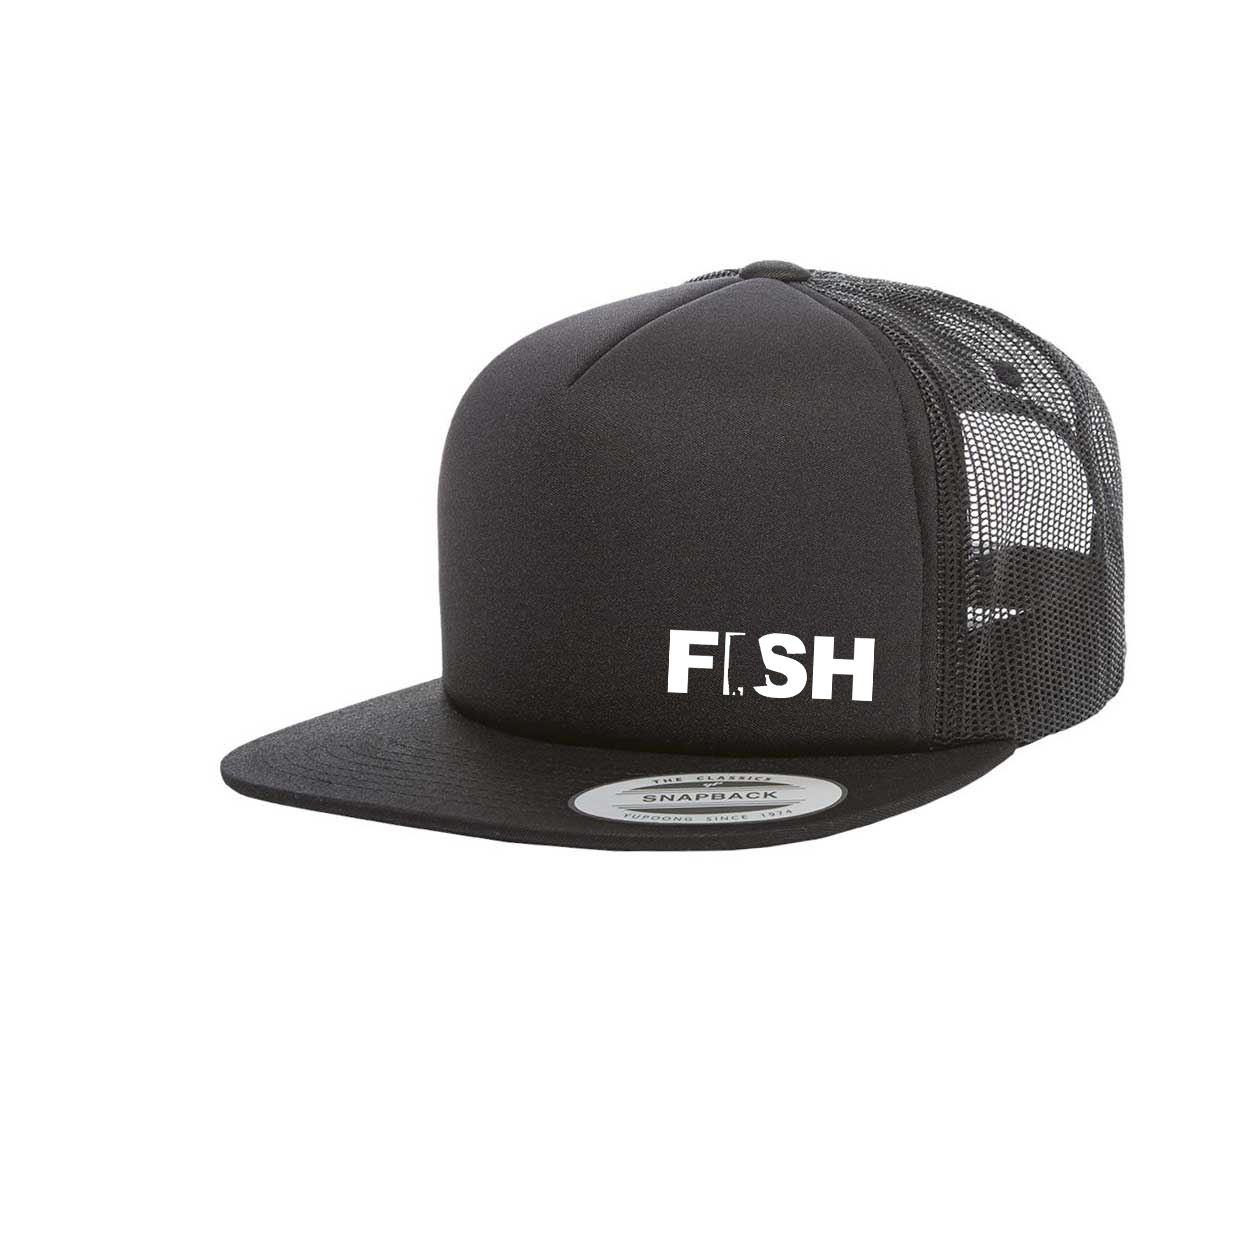 Fish Alabama Night Out Premium Foam Flat Brim Snapback Hat Black (White Logo)